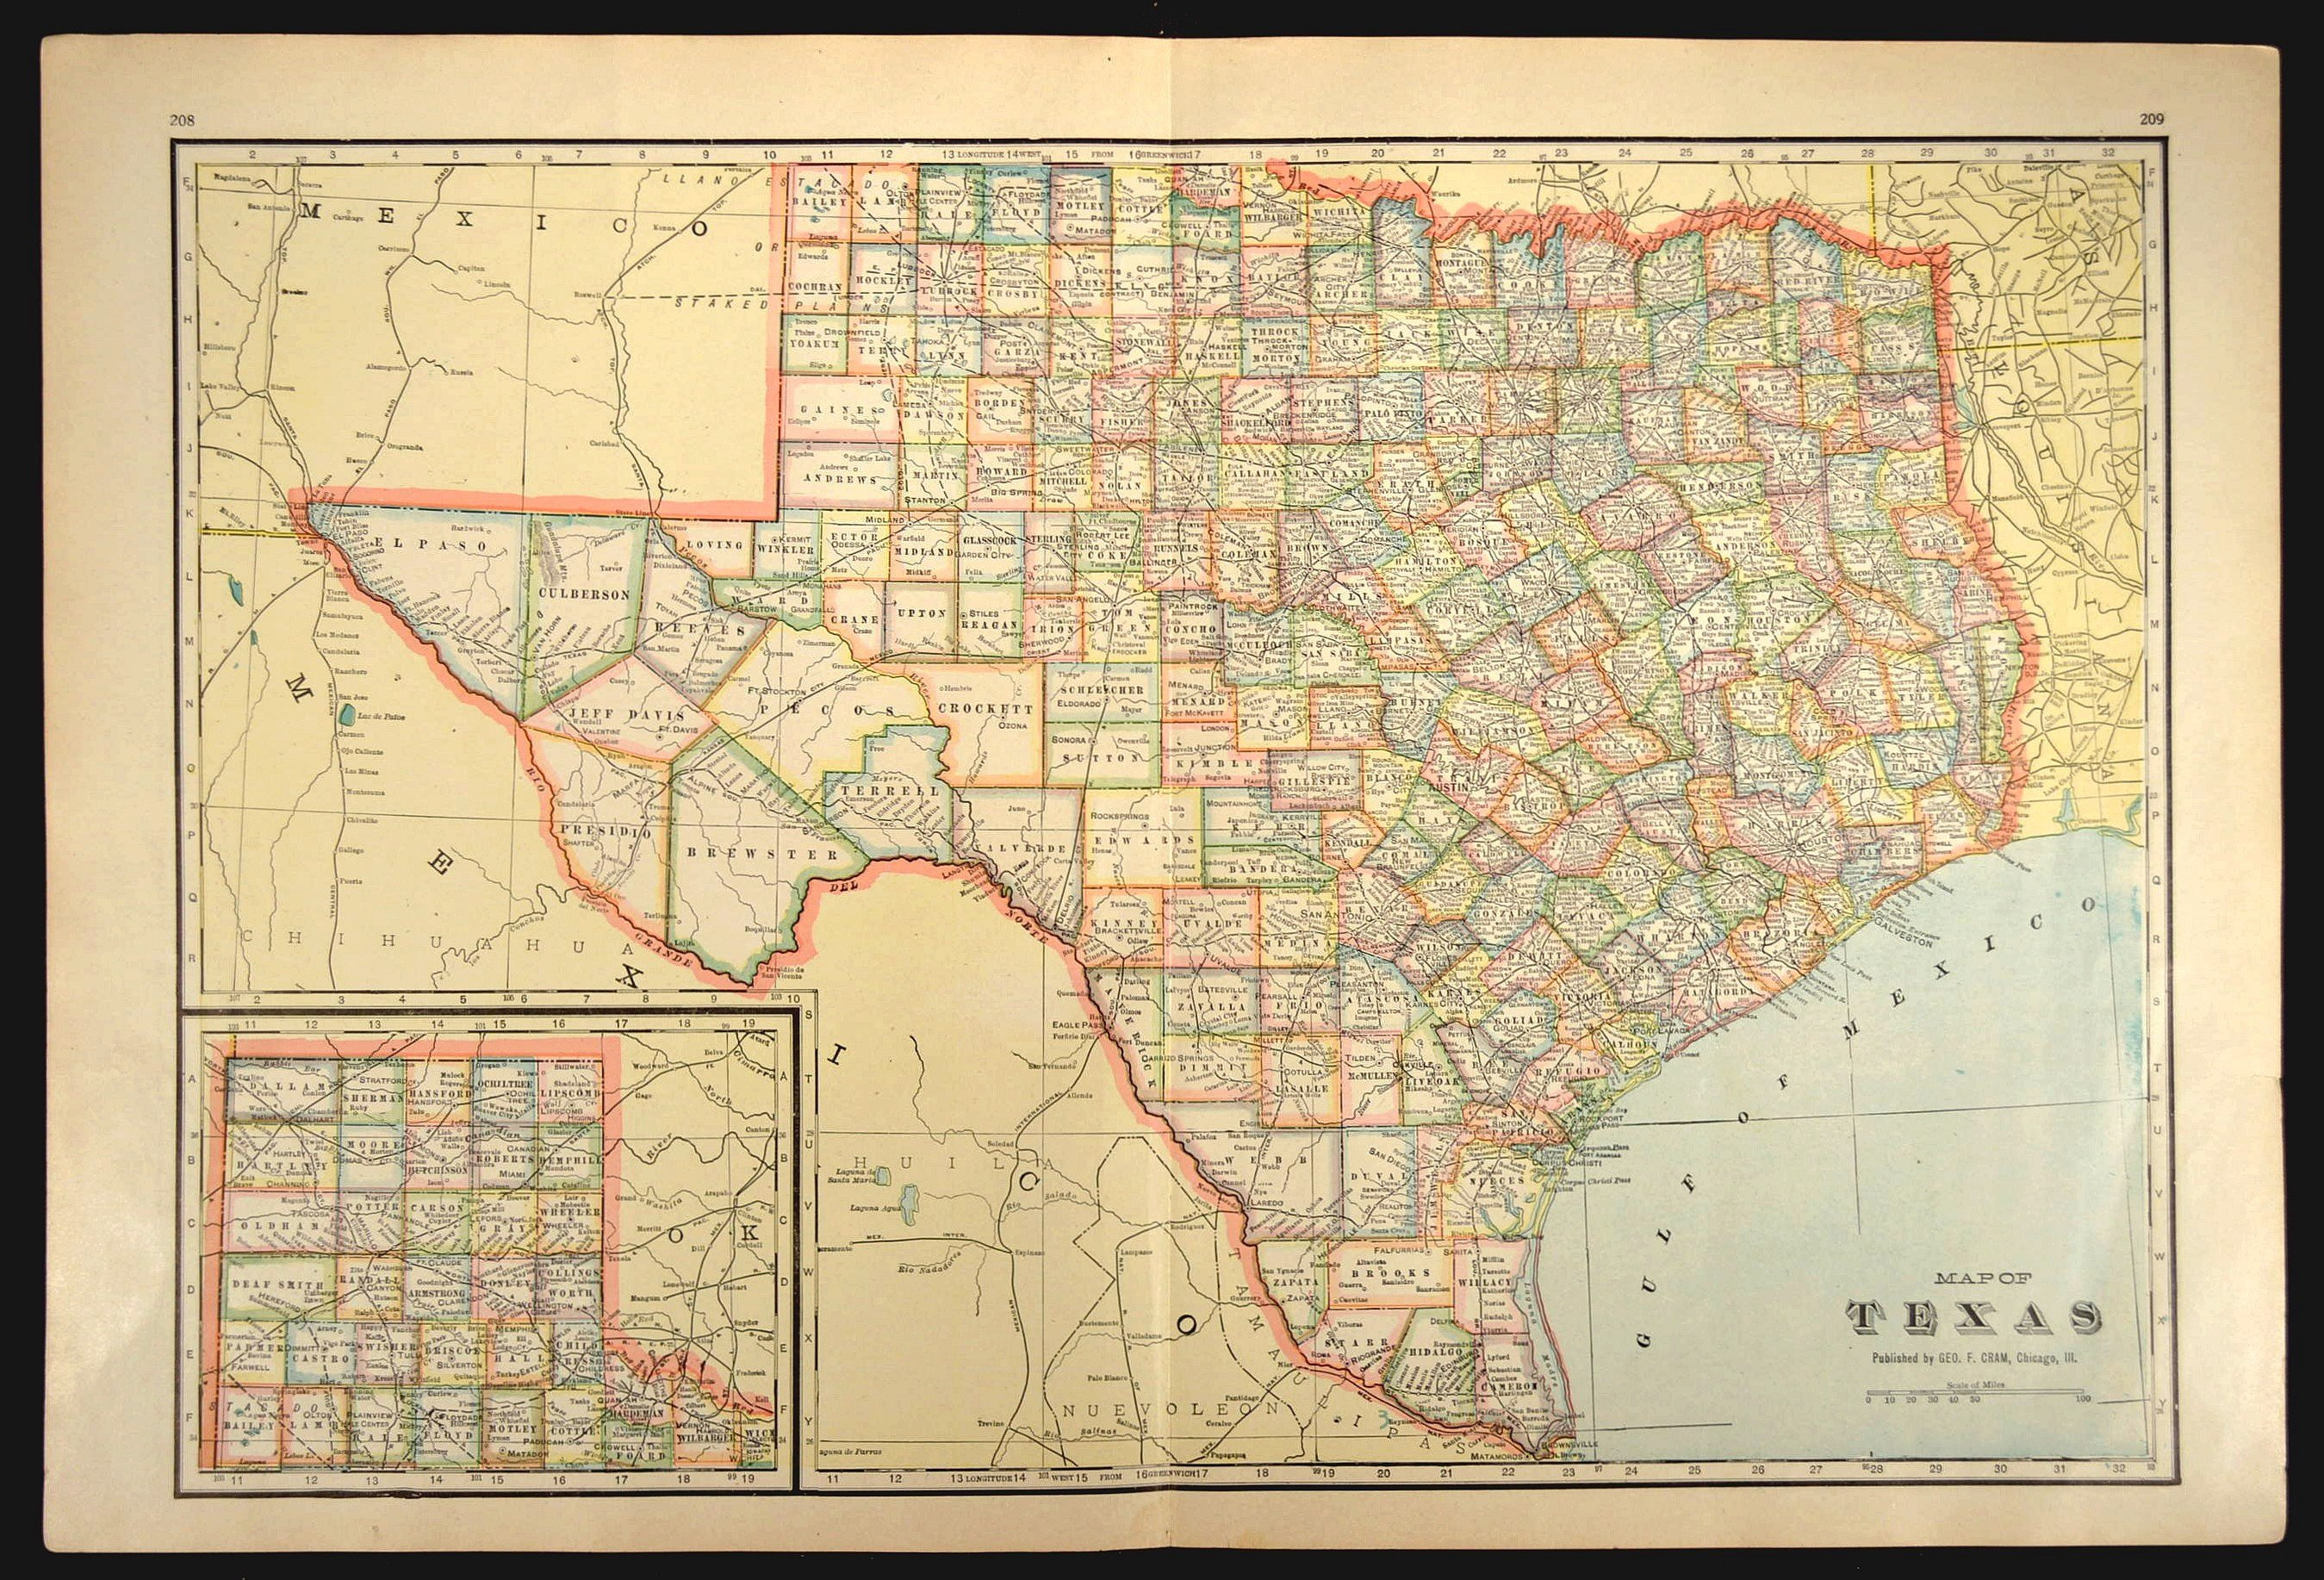 Texas Map Of Texas Wall Art Decor Large Antique Colorful | Etsy - Large Texas Wall Map